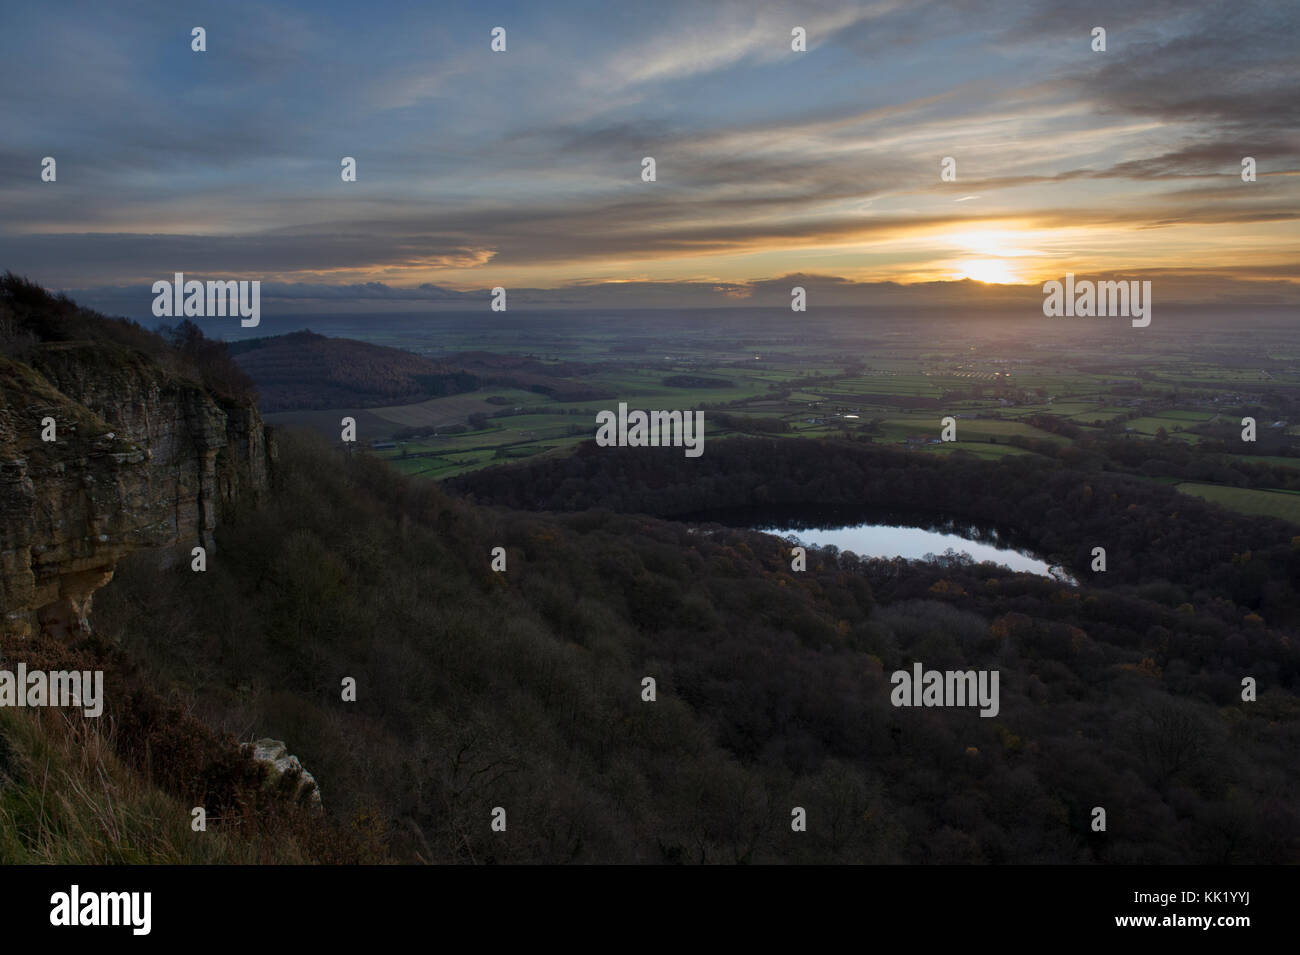 Sunset over Lake Gormire and the Vale of York taken from 'The best view in Britain' at the top of Sutton - Stock Image